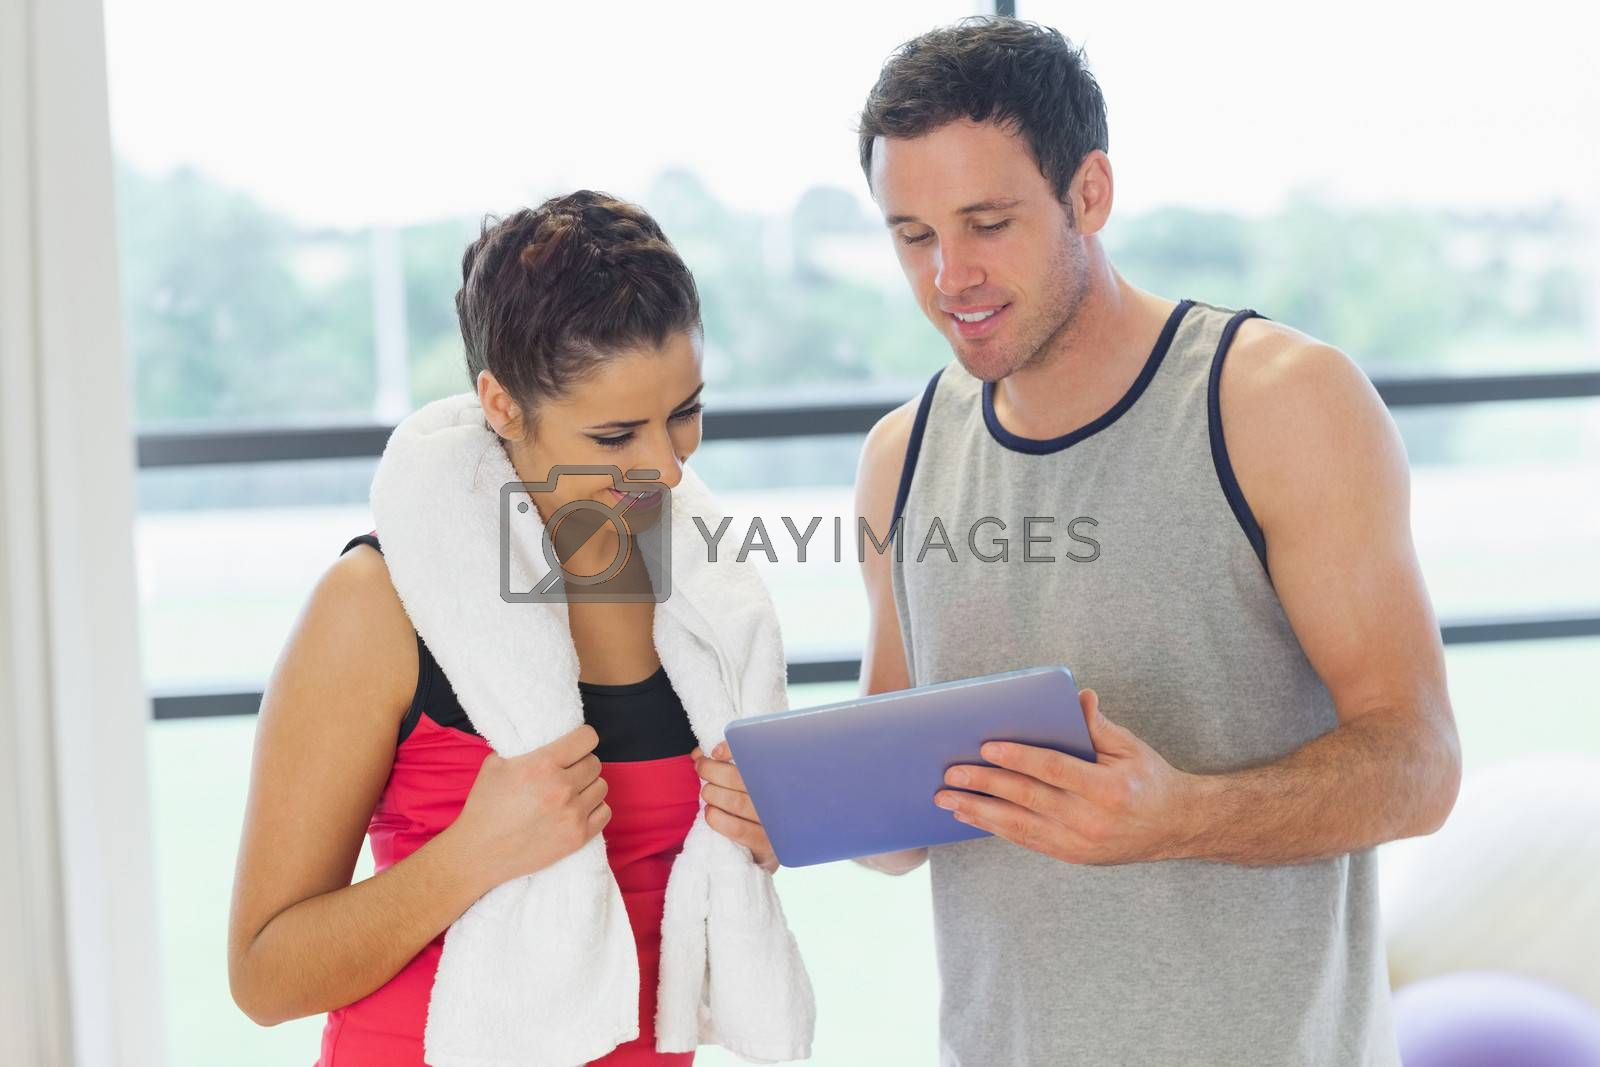 Fit young couple looking at digital table in a bright exercise room